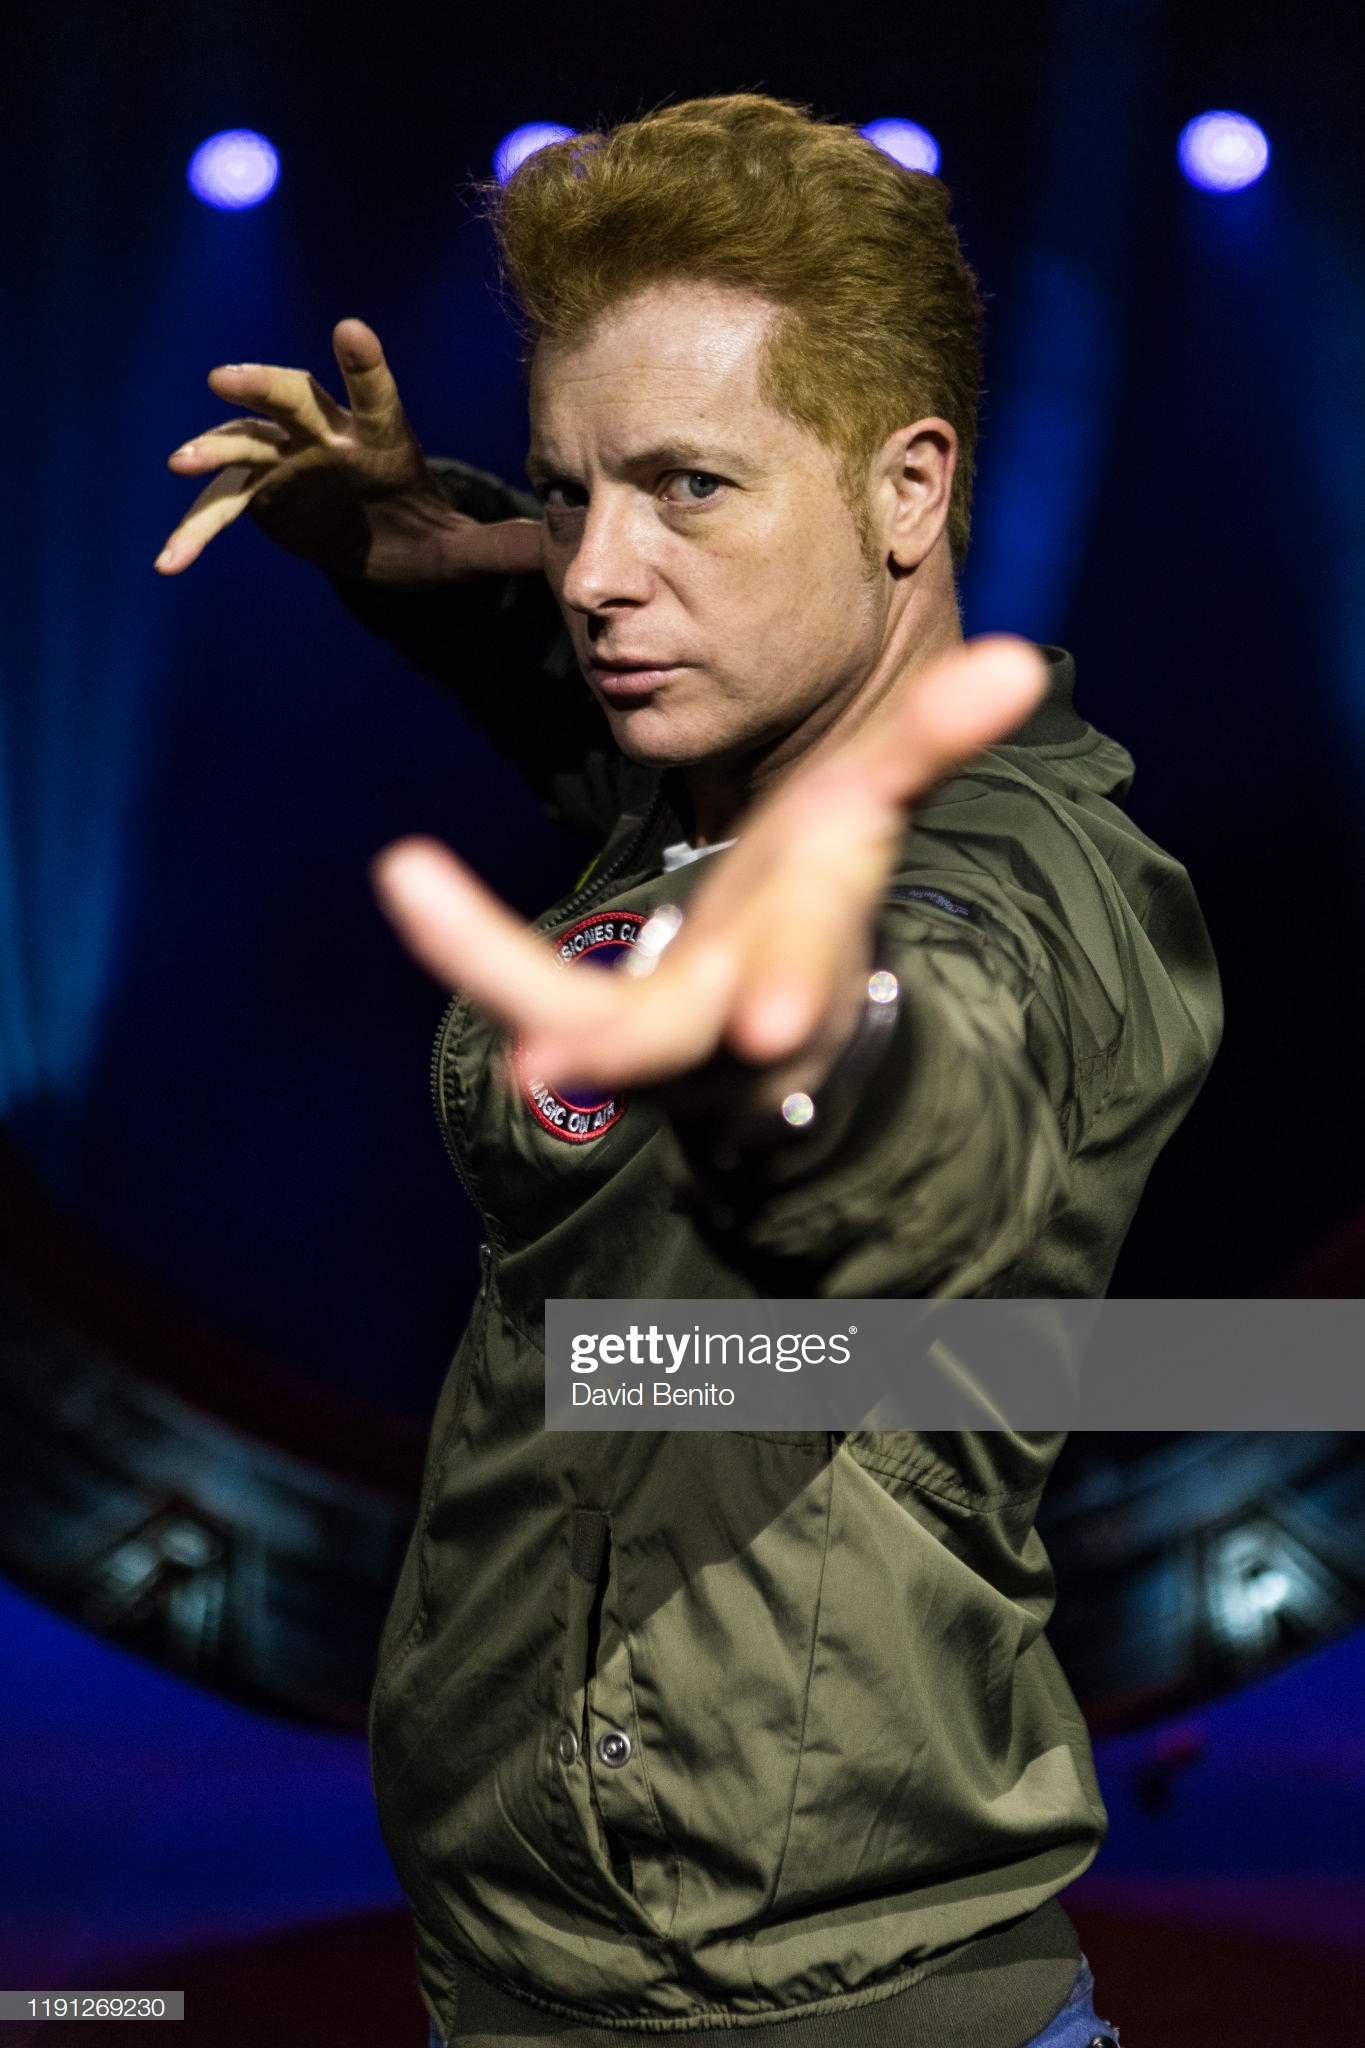 gettyimages-1191269230-2048x2048